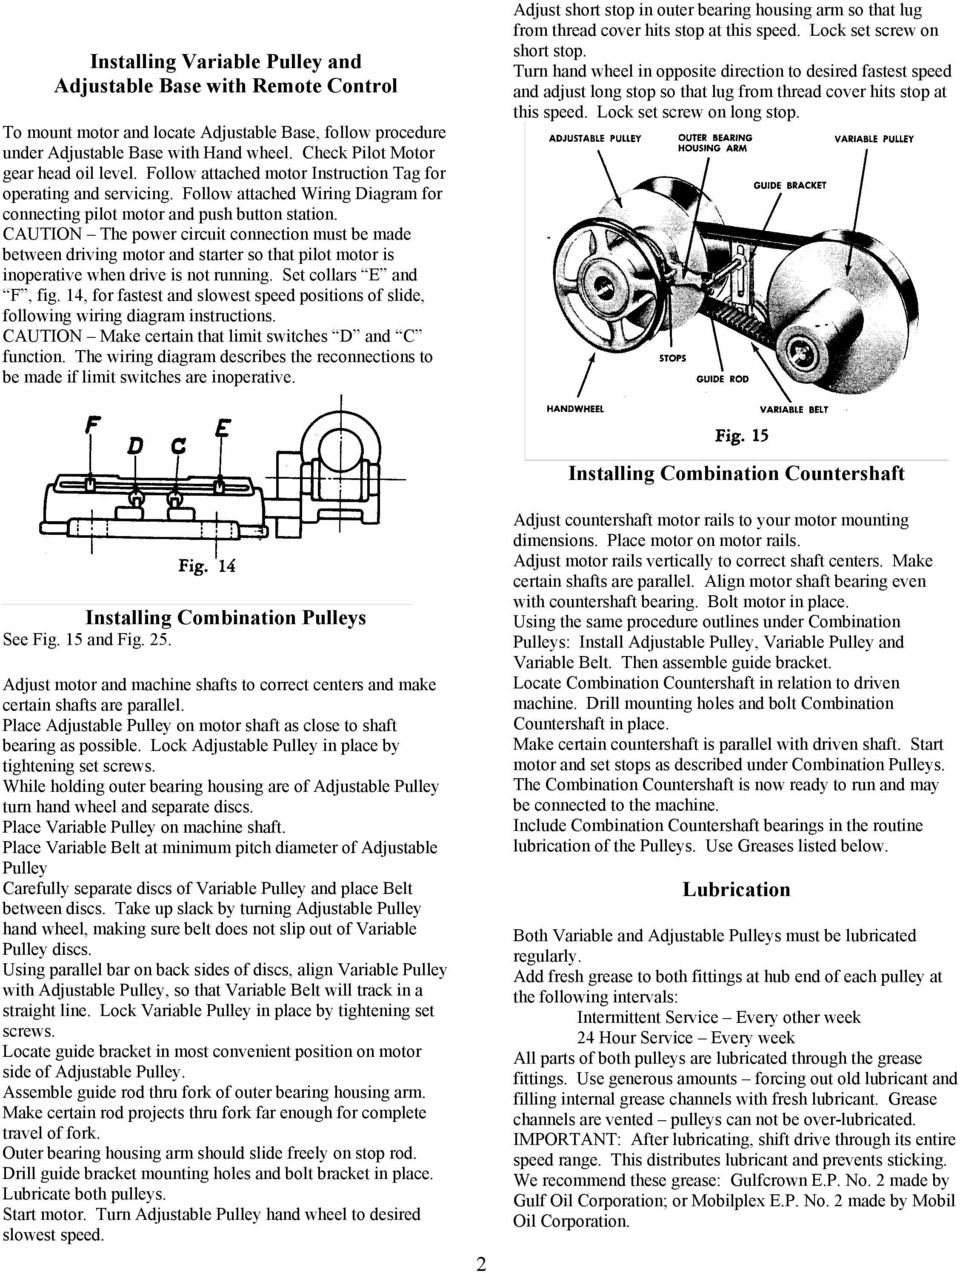 Lewellen Pulleys Track A V Type Belt At Infinitely Adjustable Itch Combination Motor Controller Wiring Diagram Caution The Power Circuit Connection Must Be Made Between Driving And Starter So That Pilot